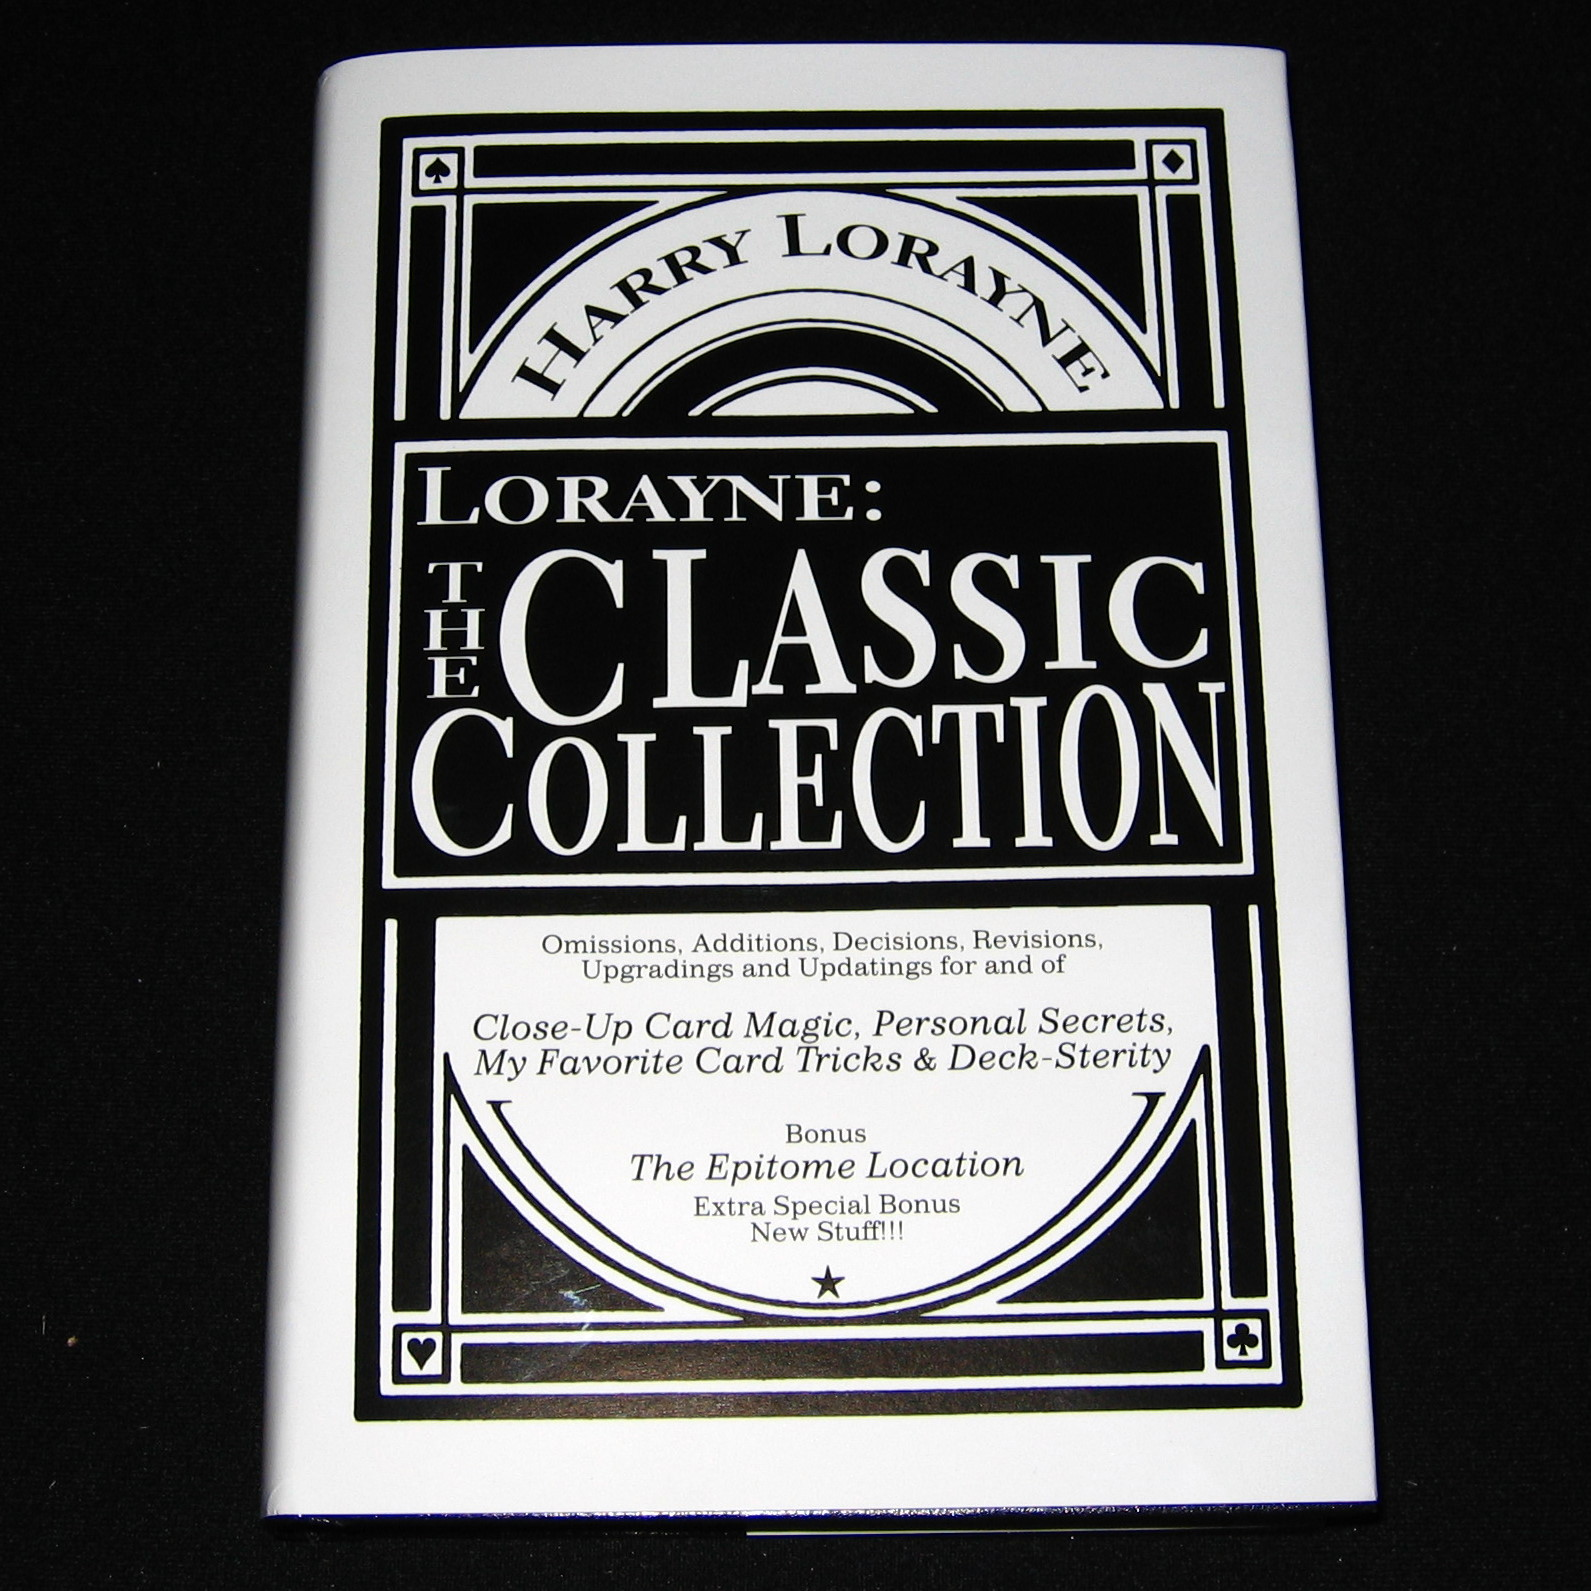 Lorayne: The Classic Collection by Harry Lorayne